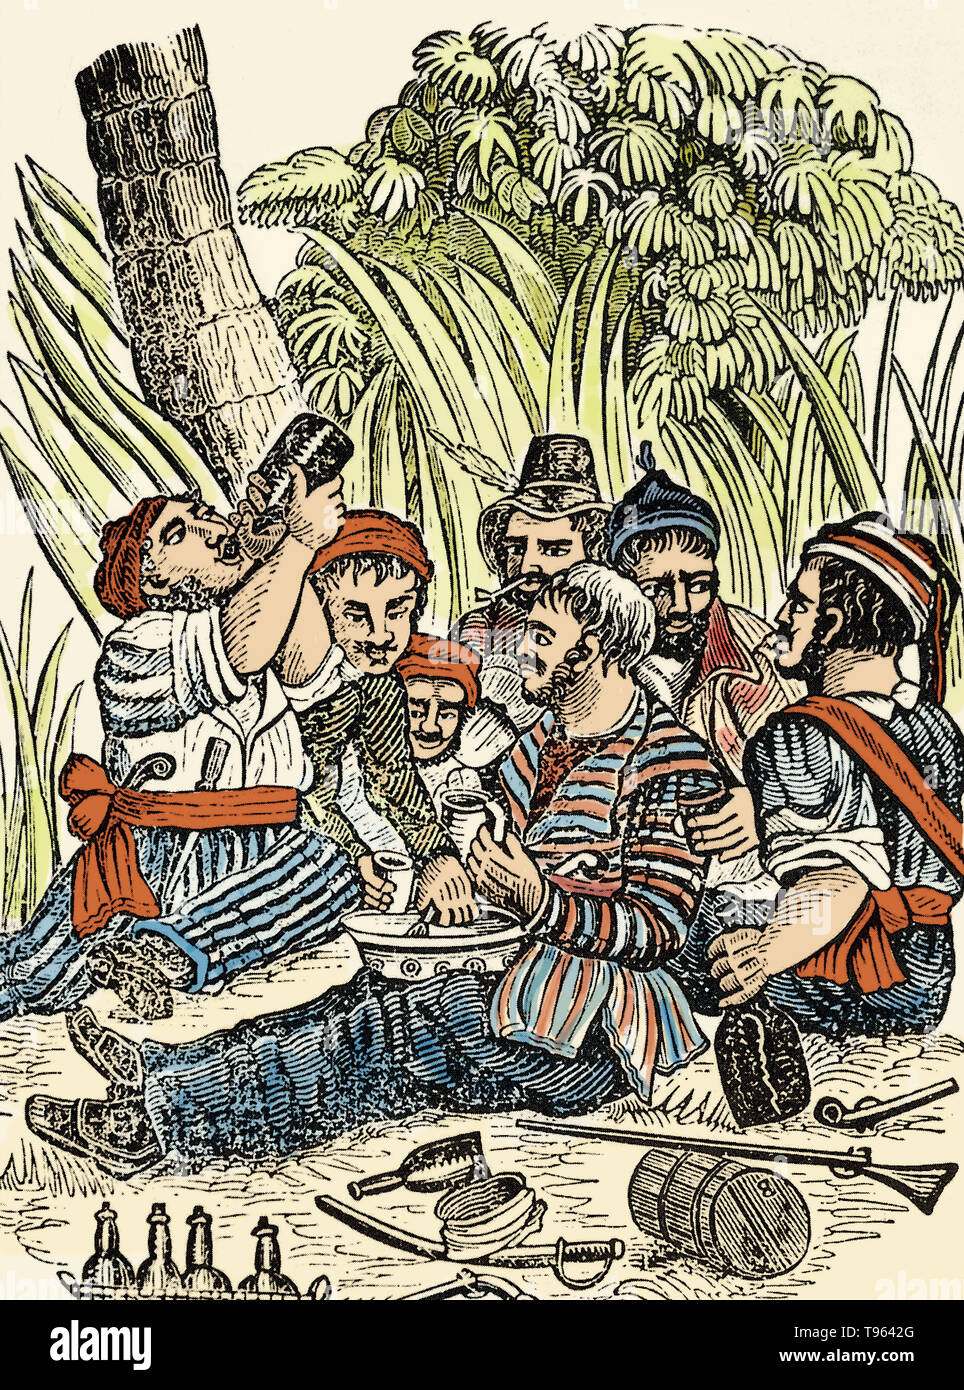 Bartholomew Roberts' crew drinking rum at the Calabar River in West Africa. Bartholomew Roberts (1682-1722) was a Welsh pirate who raided ships off America and West Africa between 1719 and 1722. He was the most successful pirate of the Golden Age of Piracy, as measured by vessels captured, taking over 470 prizes in his career. He is also known as Black Bart. In 1723 Roberts had captured the Neptune, and many of his crew were drunk and unfit for duty just when he needed them most. - Stock Image